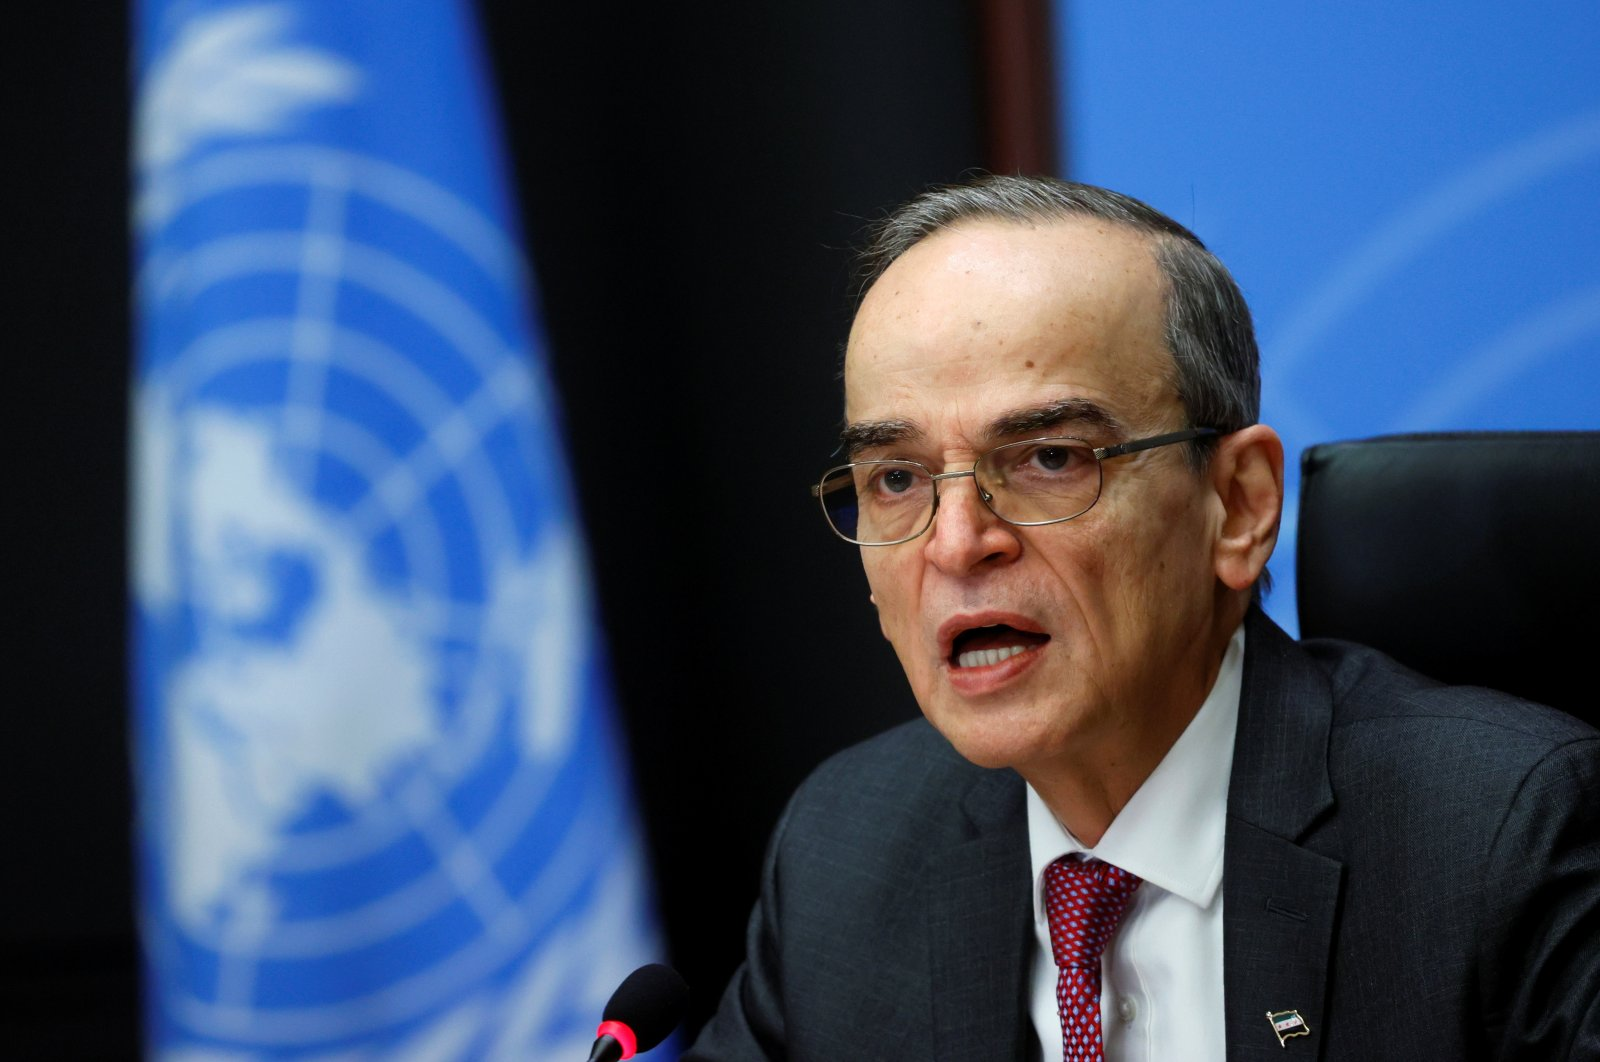 Hadi al-Bahra, co-chair for the Syrian opposition, attends a news conference after a meeting of the Syrian Constitutional Committee at the United Nations in Geneva, Switzerland, Jan. 29, 2021. (Reuters Photo)